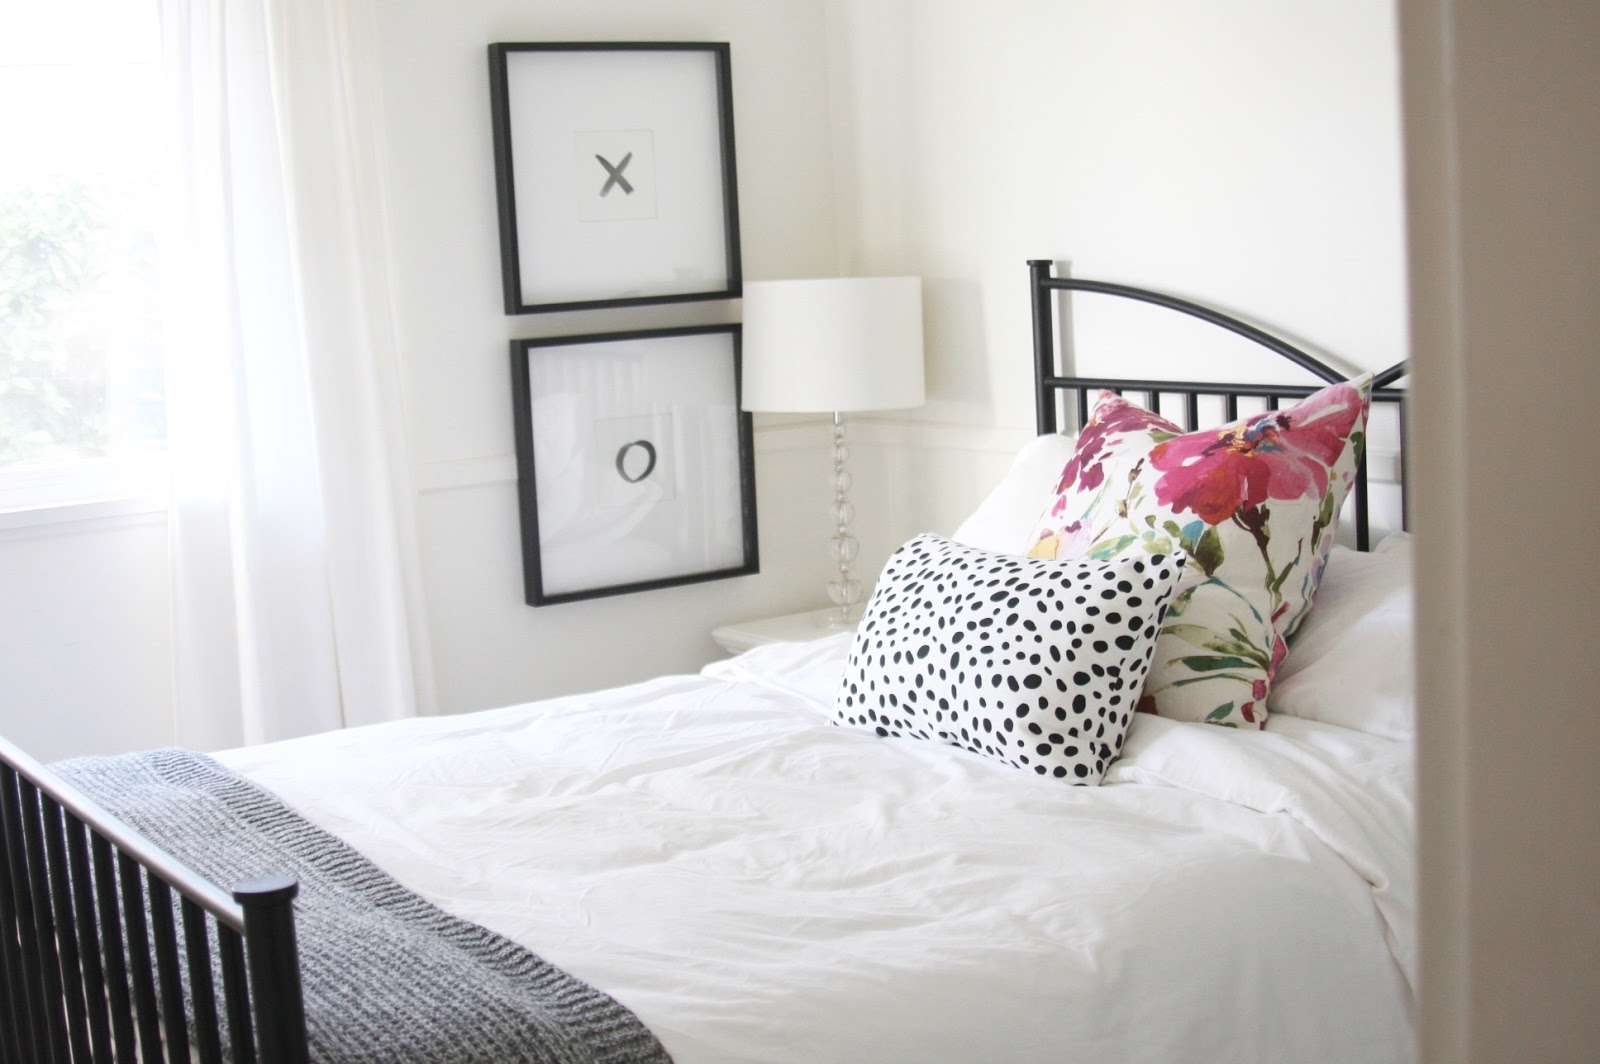 Our Guest Room Was A Sad Dark Room That A Few Years Ago Received A Fresh  Coat Of Warm White Paint. We Are Renting So No Major Renovations Can Be  Done But ...